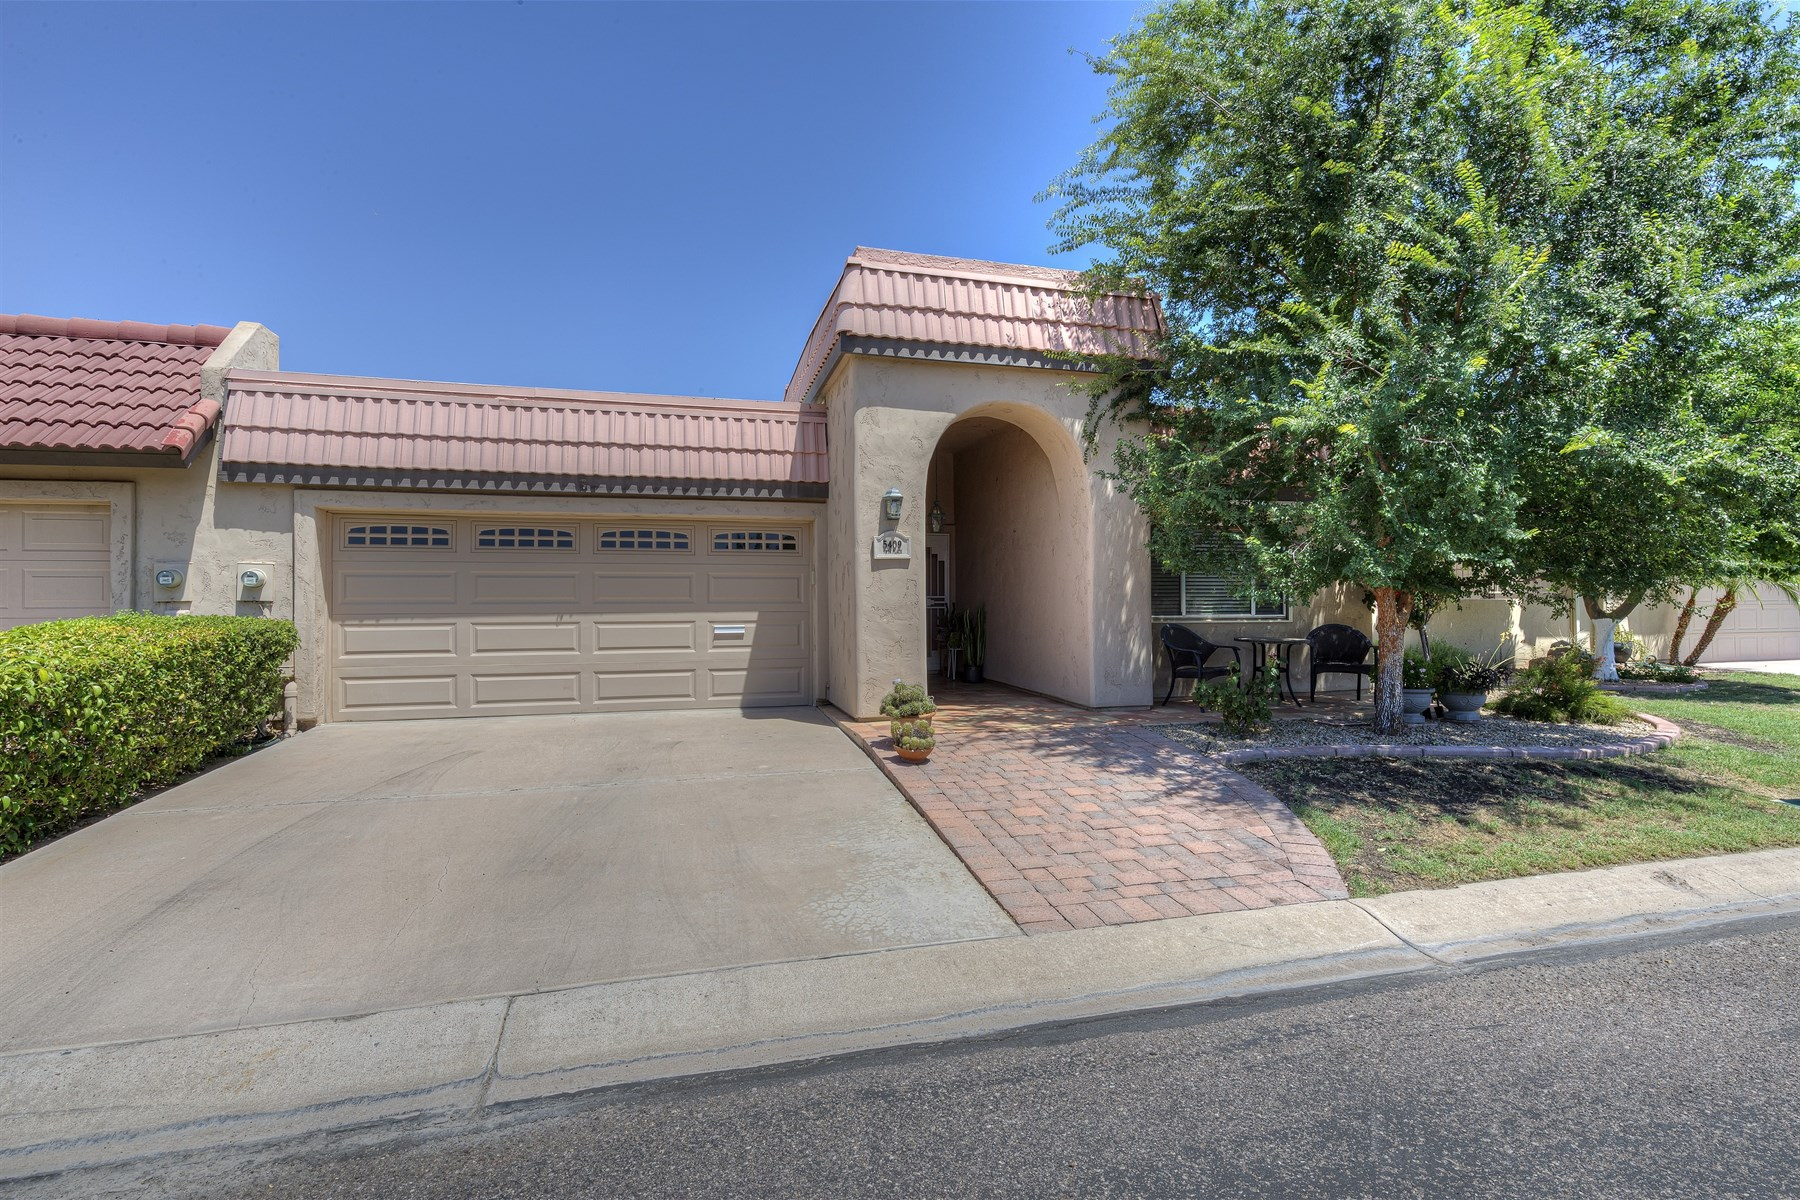 Townhouse for Sale at Great Location in the Heart of Scottsdale 5409 N 79TH PL Scottsdale, Arizona 85250 United States